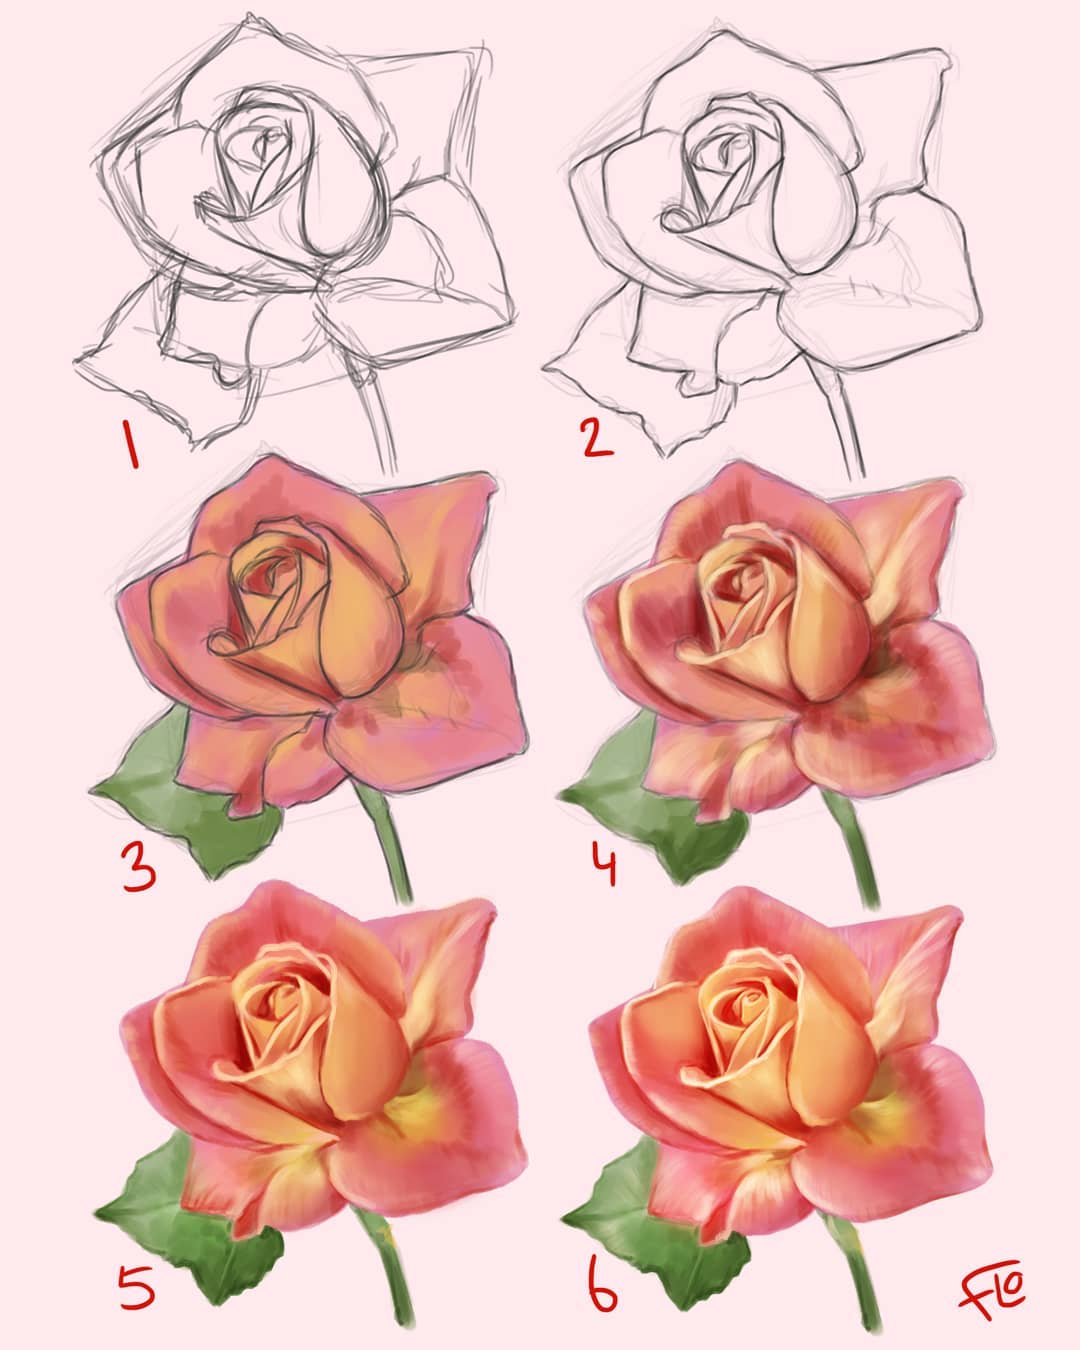 drawing rose step by step tutorial by flo